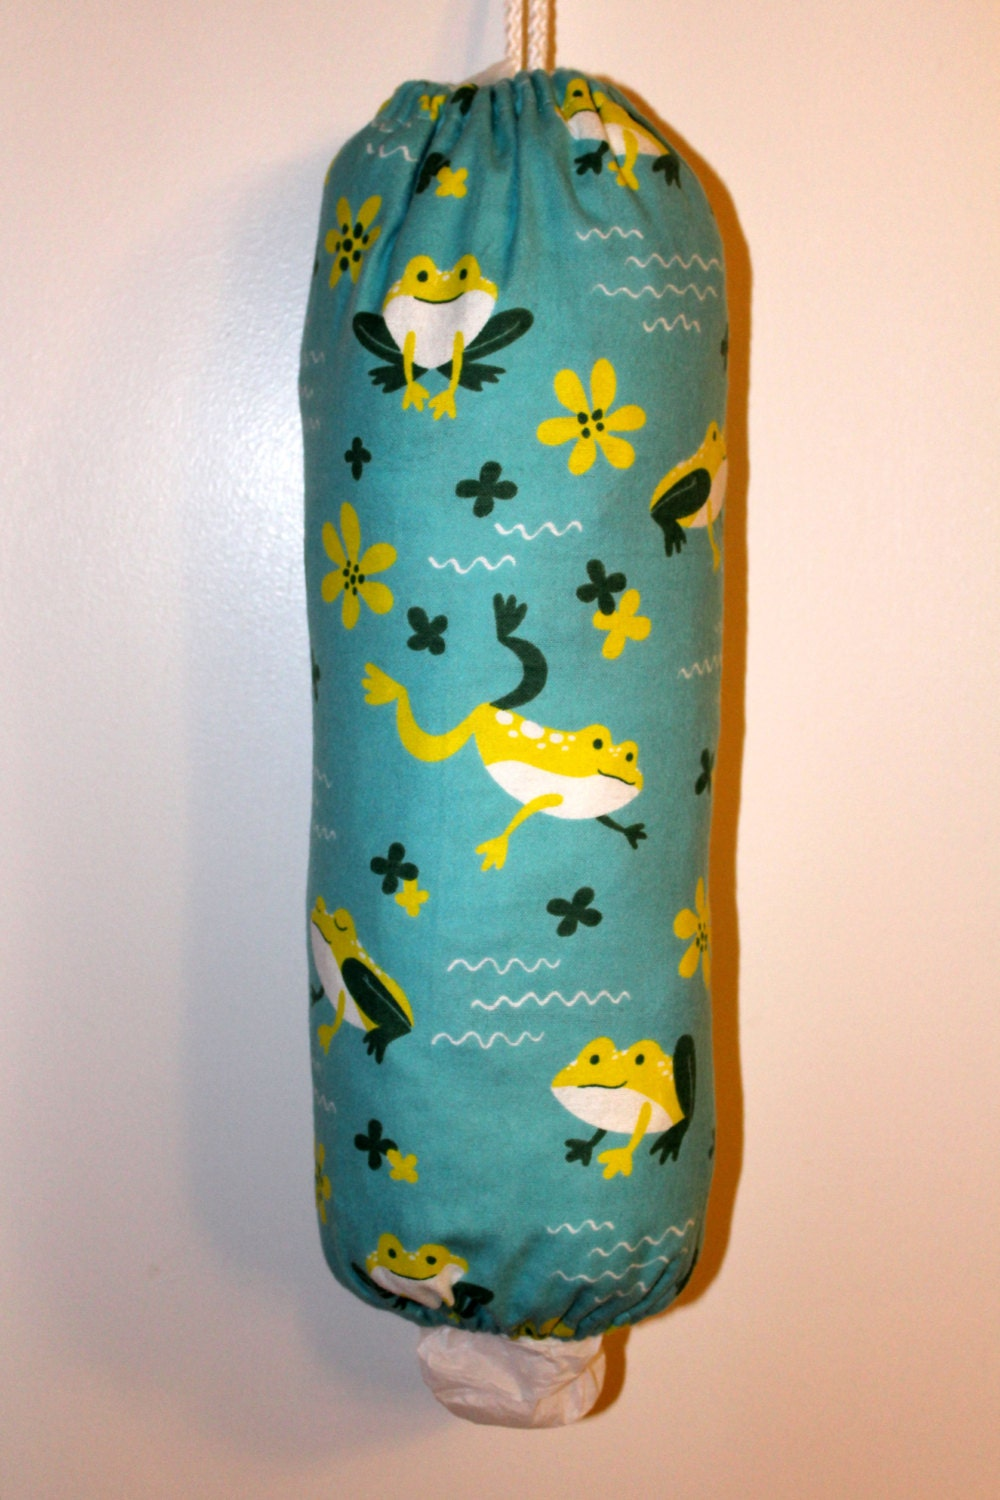 grocery bag holder plastic bag holder dispenser frogs on. Black Bedroom Furniture Sets. Home Design Ideas